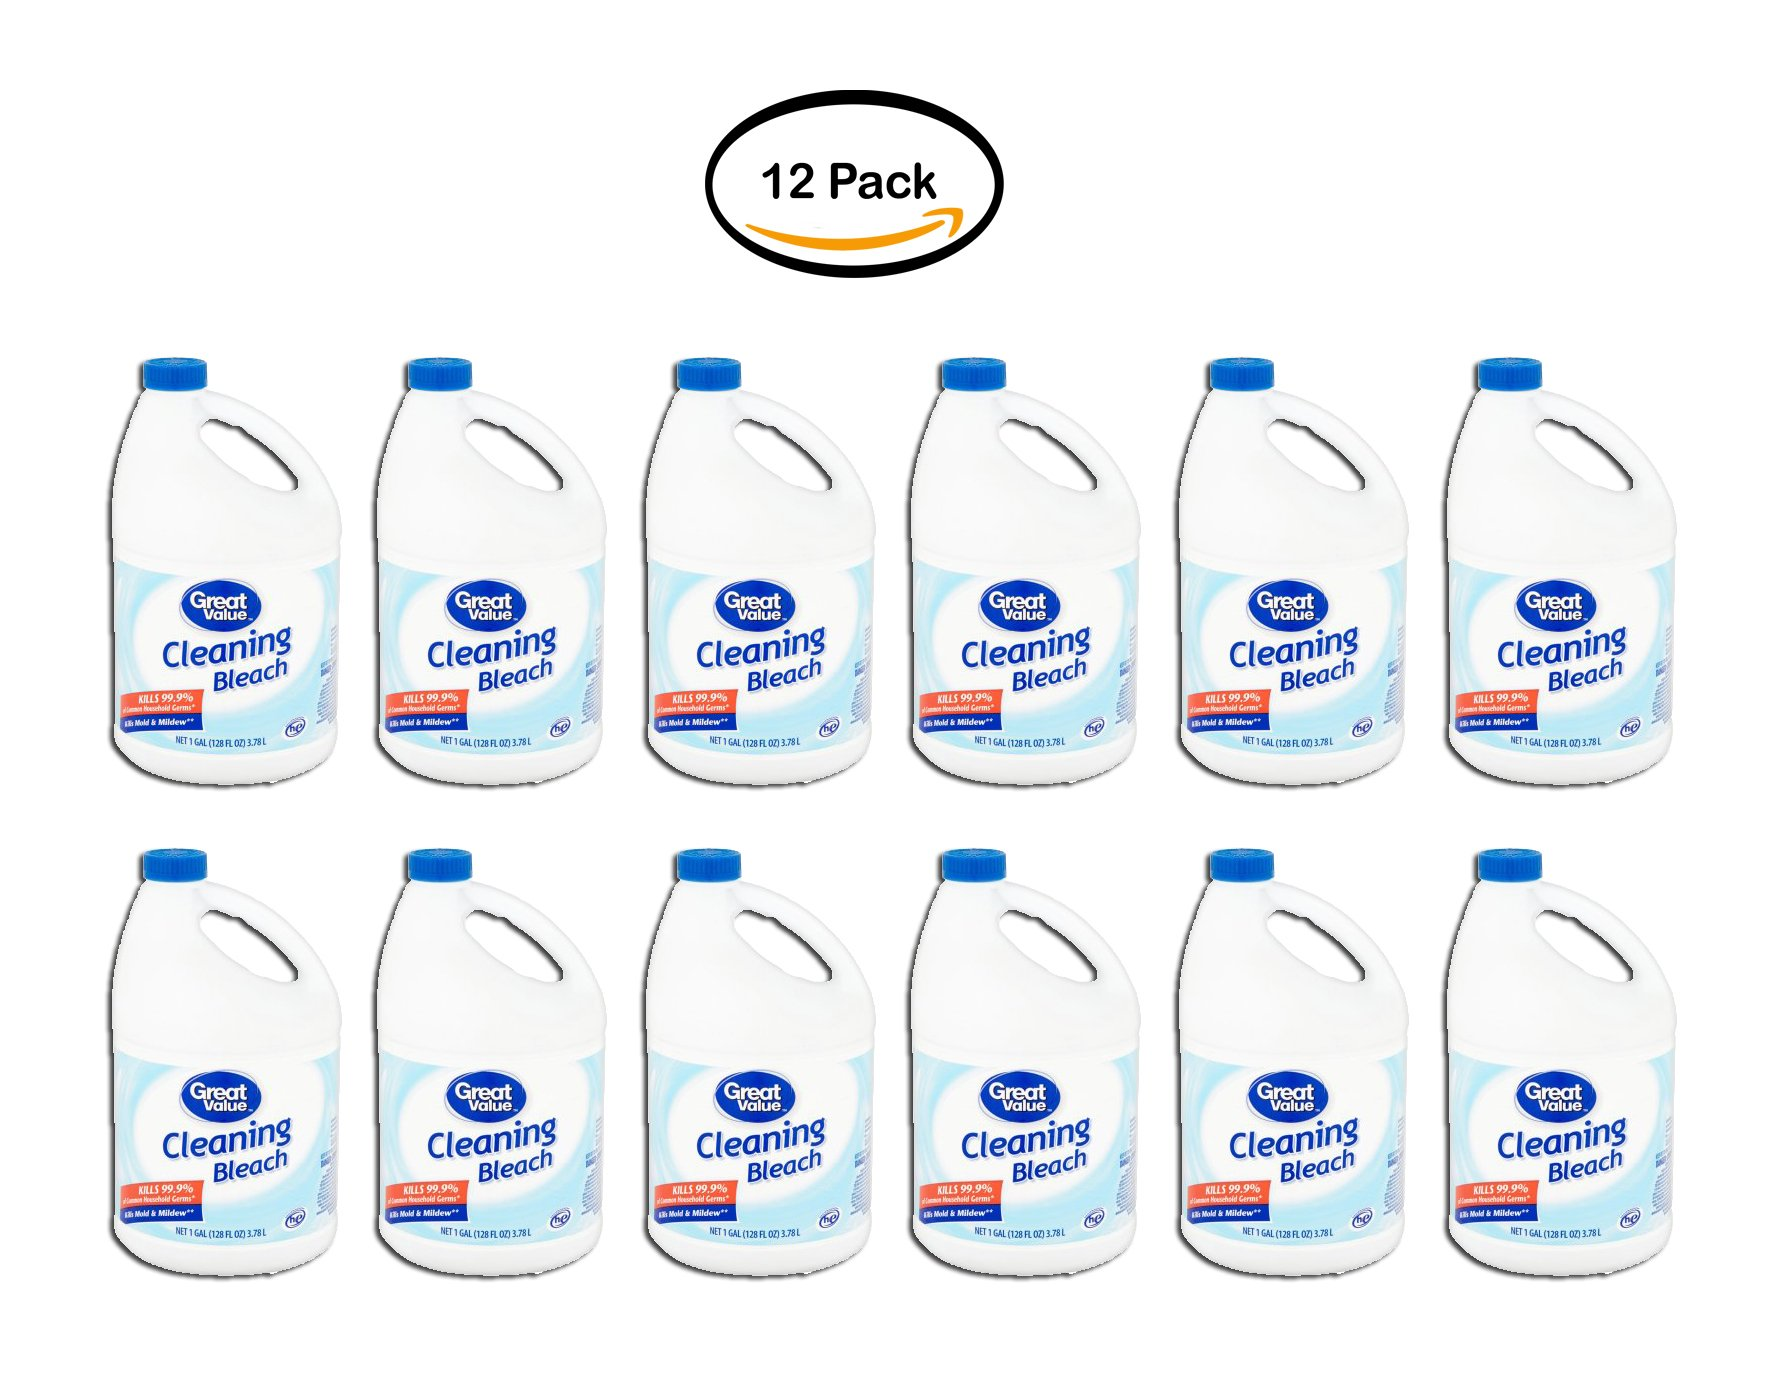 PACK OF 12 - Great Value Cleaning Bleach, 128 fl oz